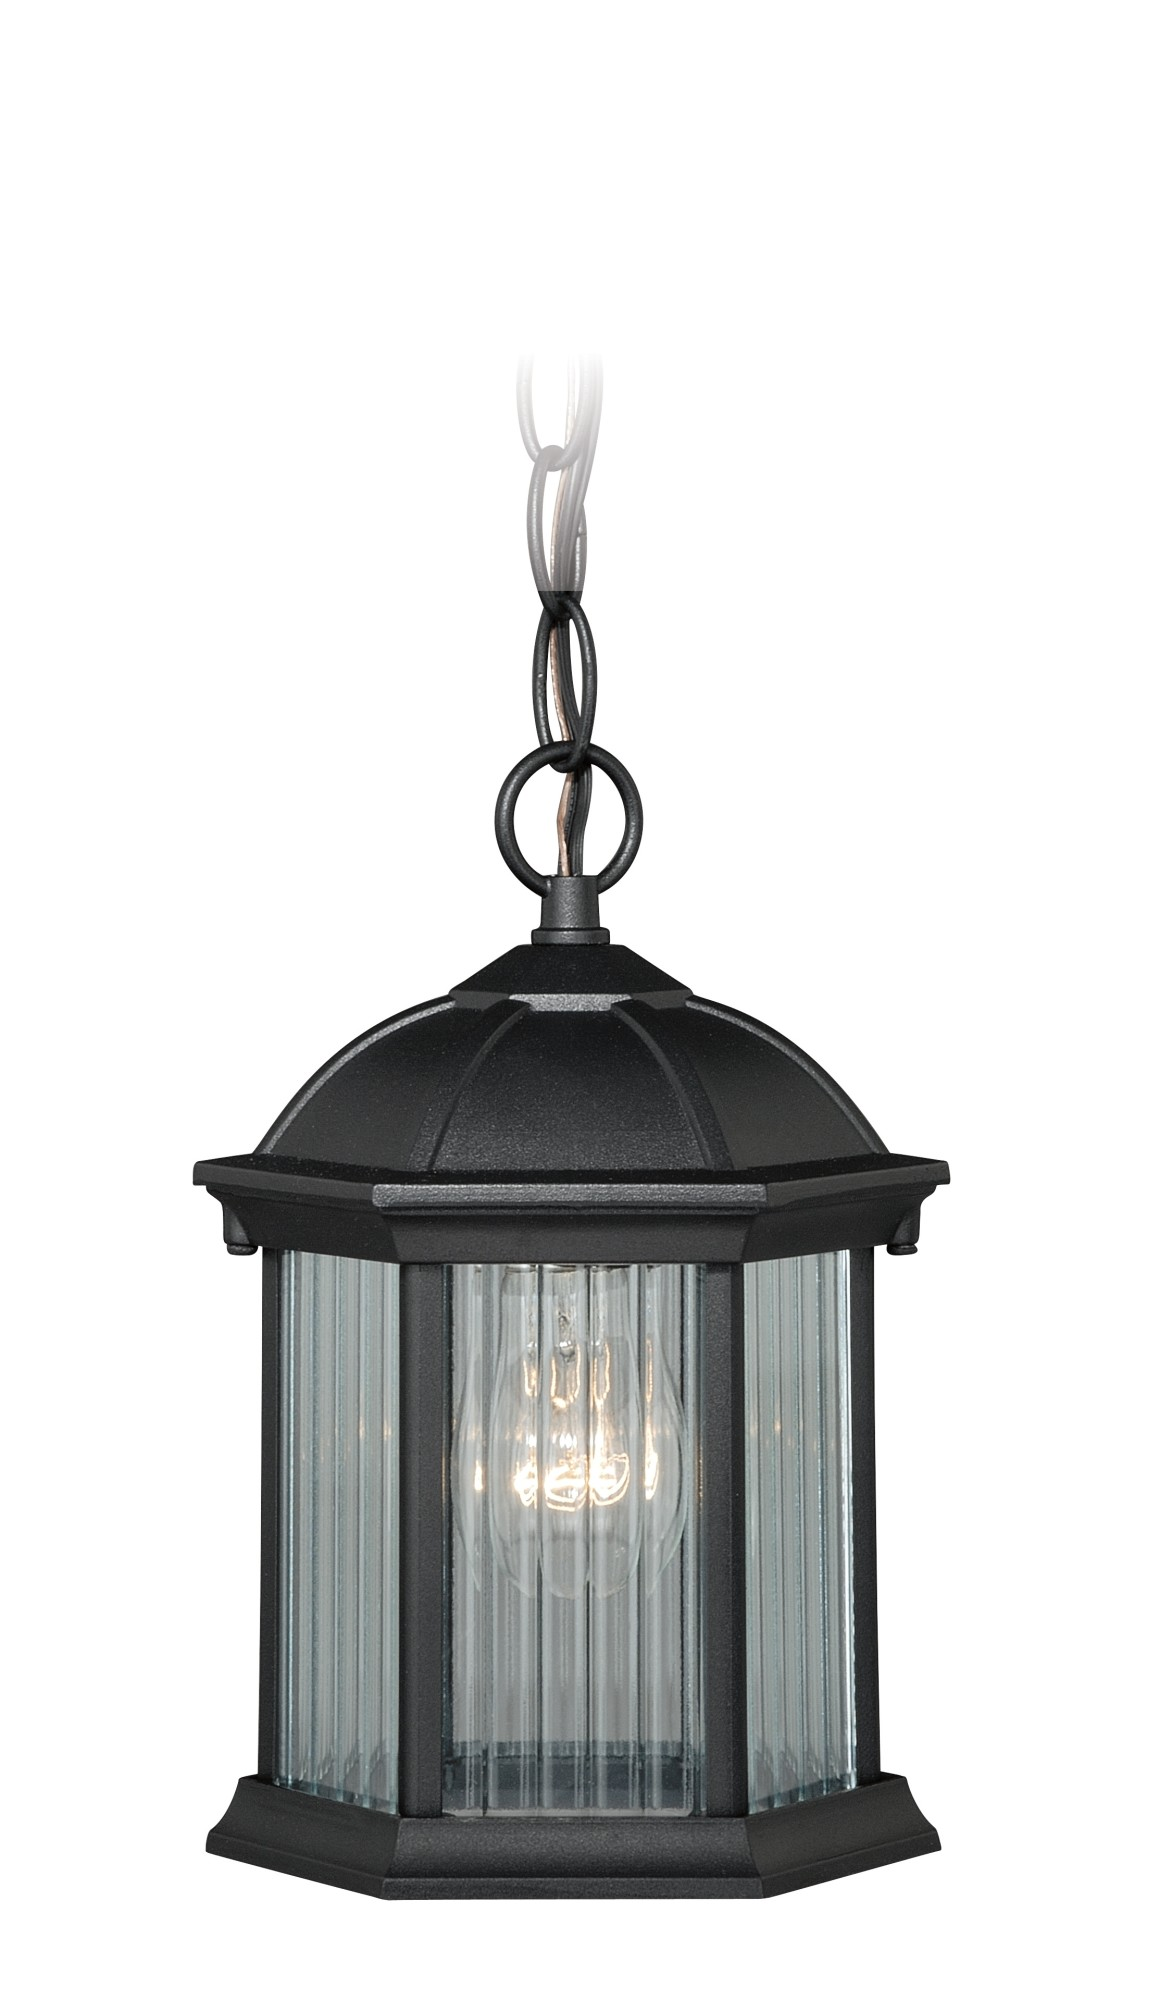 Vaxcel lighting t0131 kingston 1 light outdoor pendant